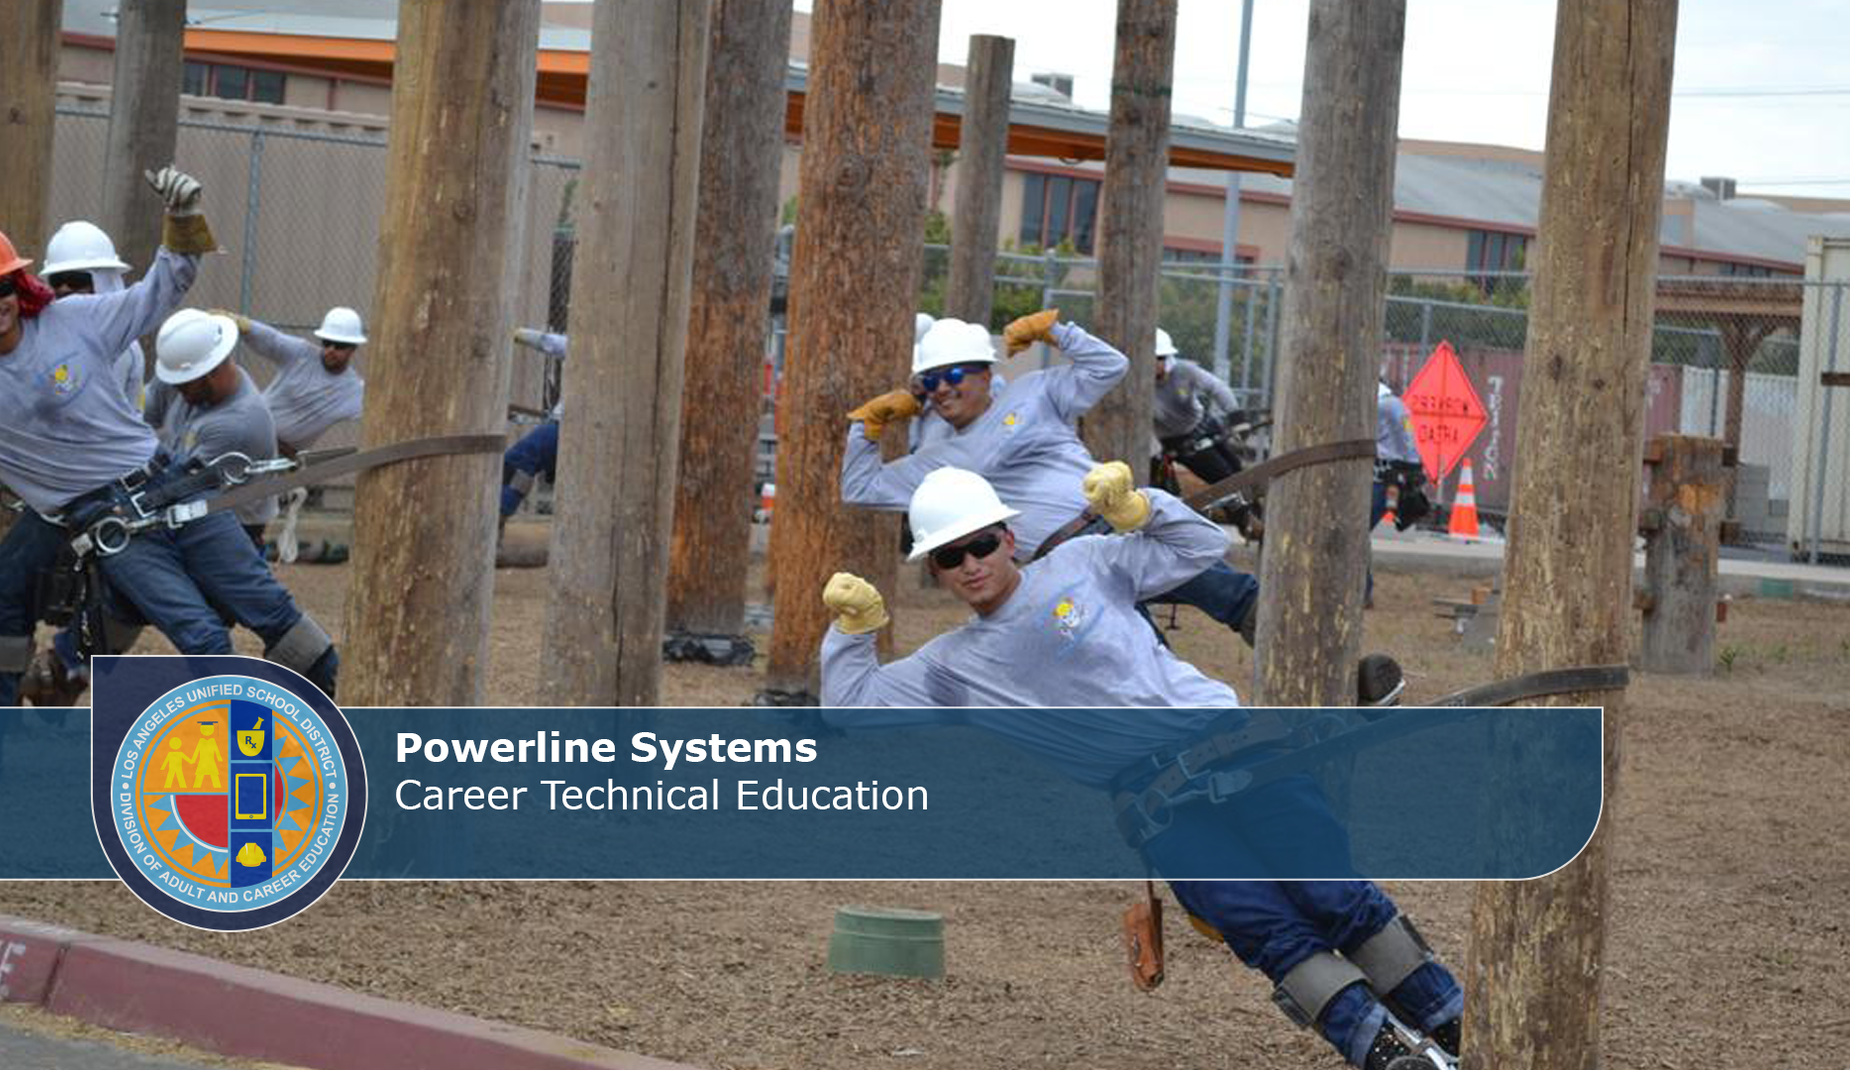 CTE Powerline Systems